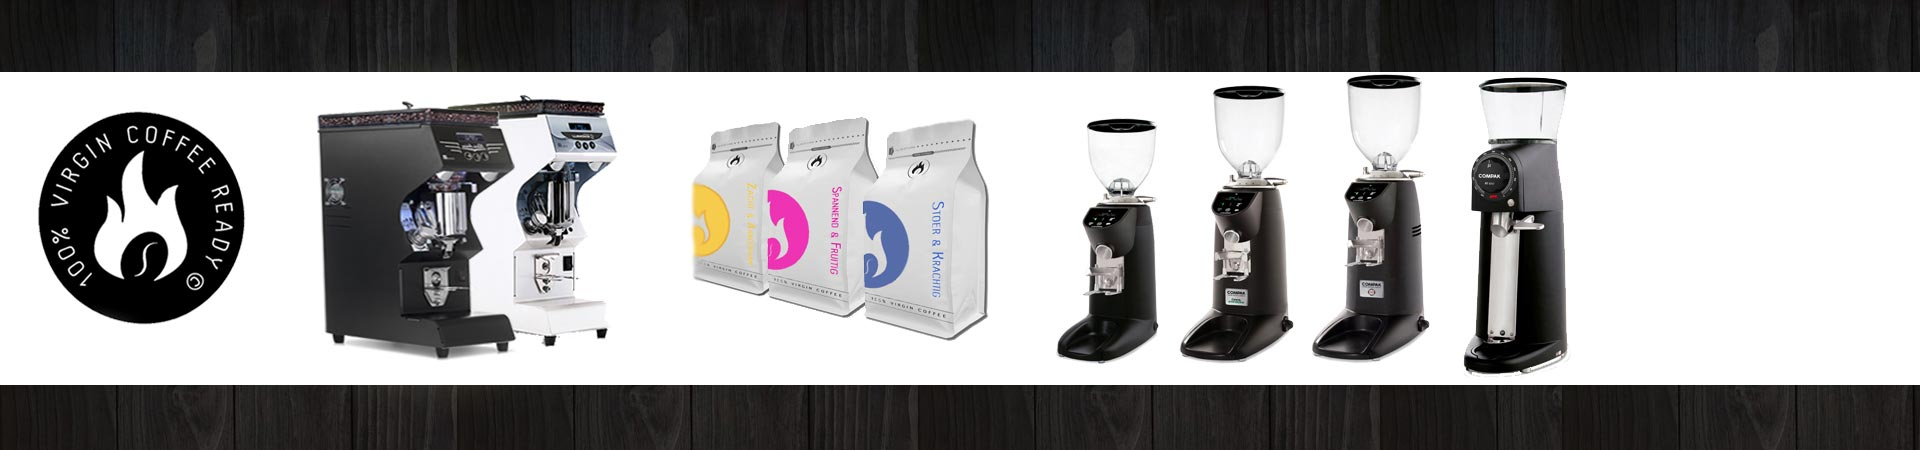 100% VIRGIN COFFEE READY GRINDER MALERS